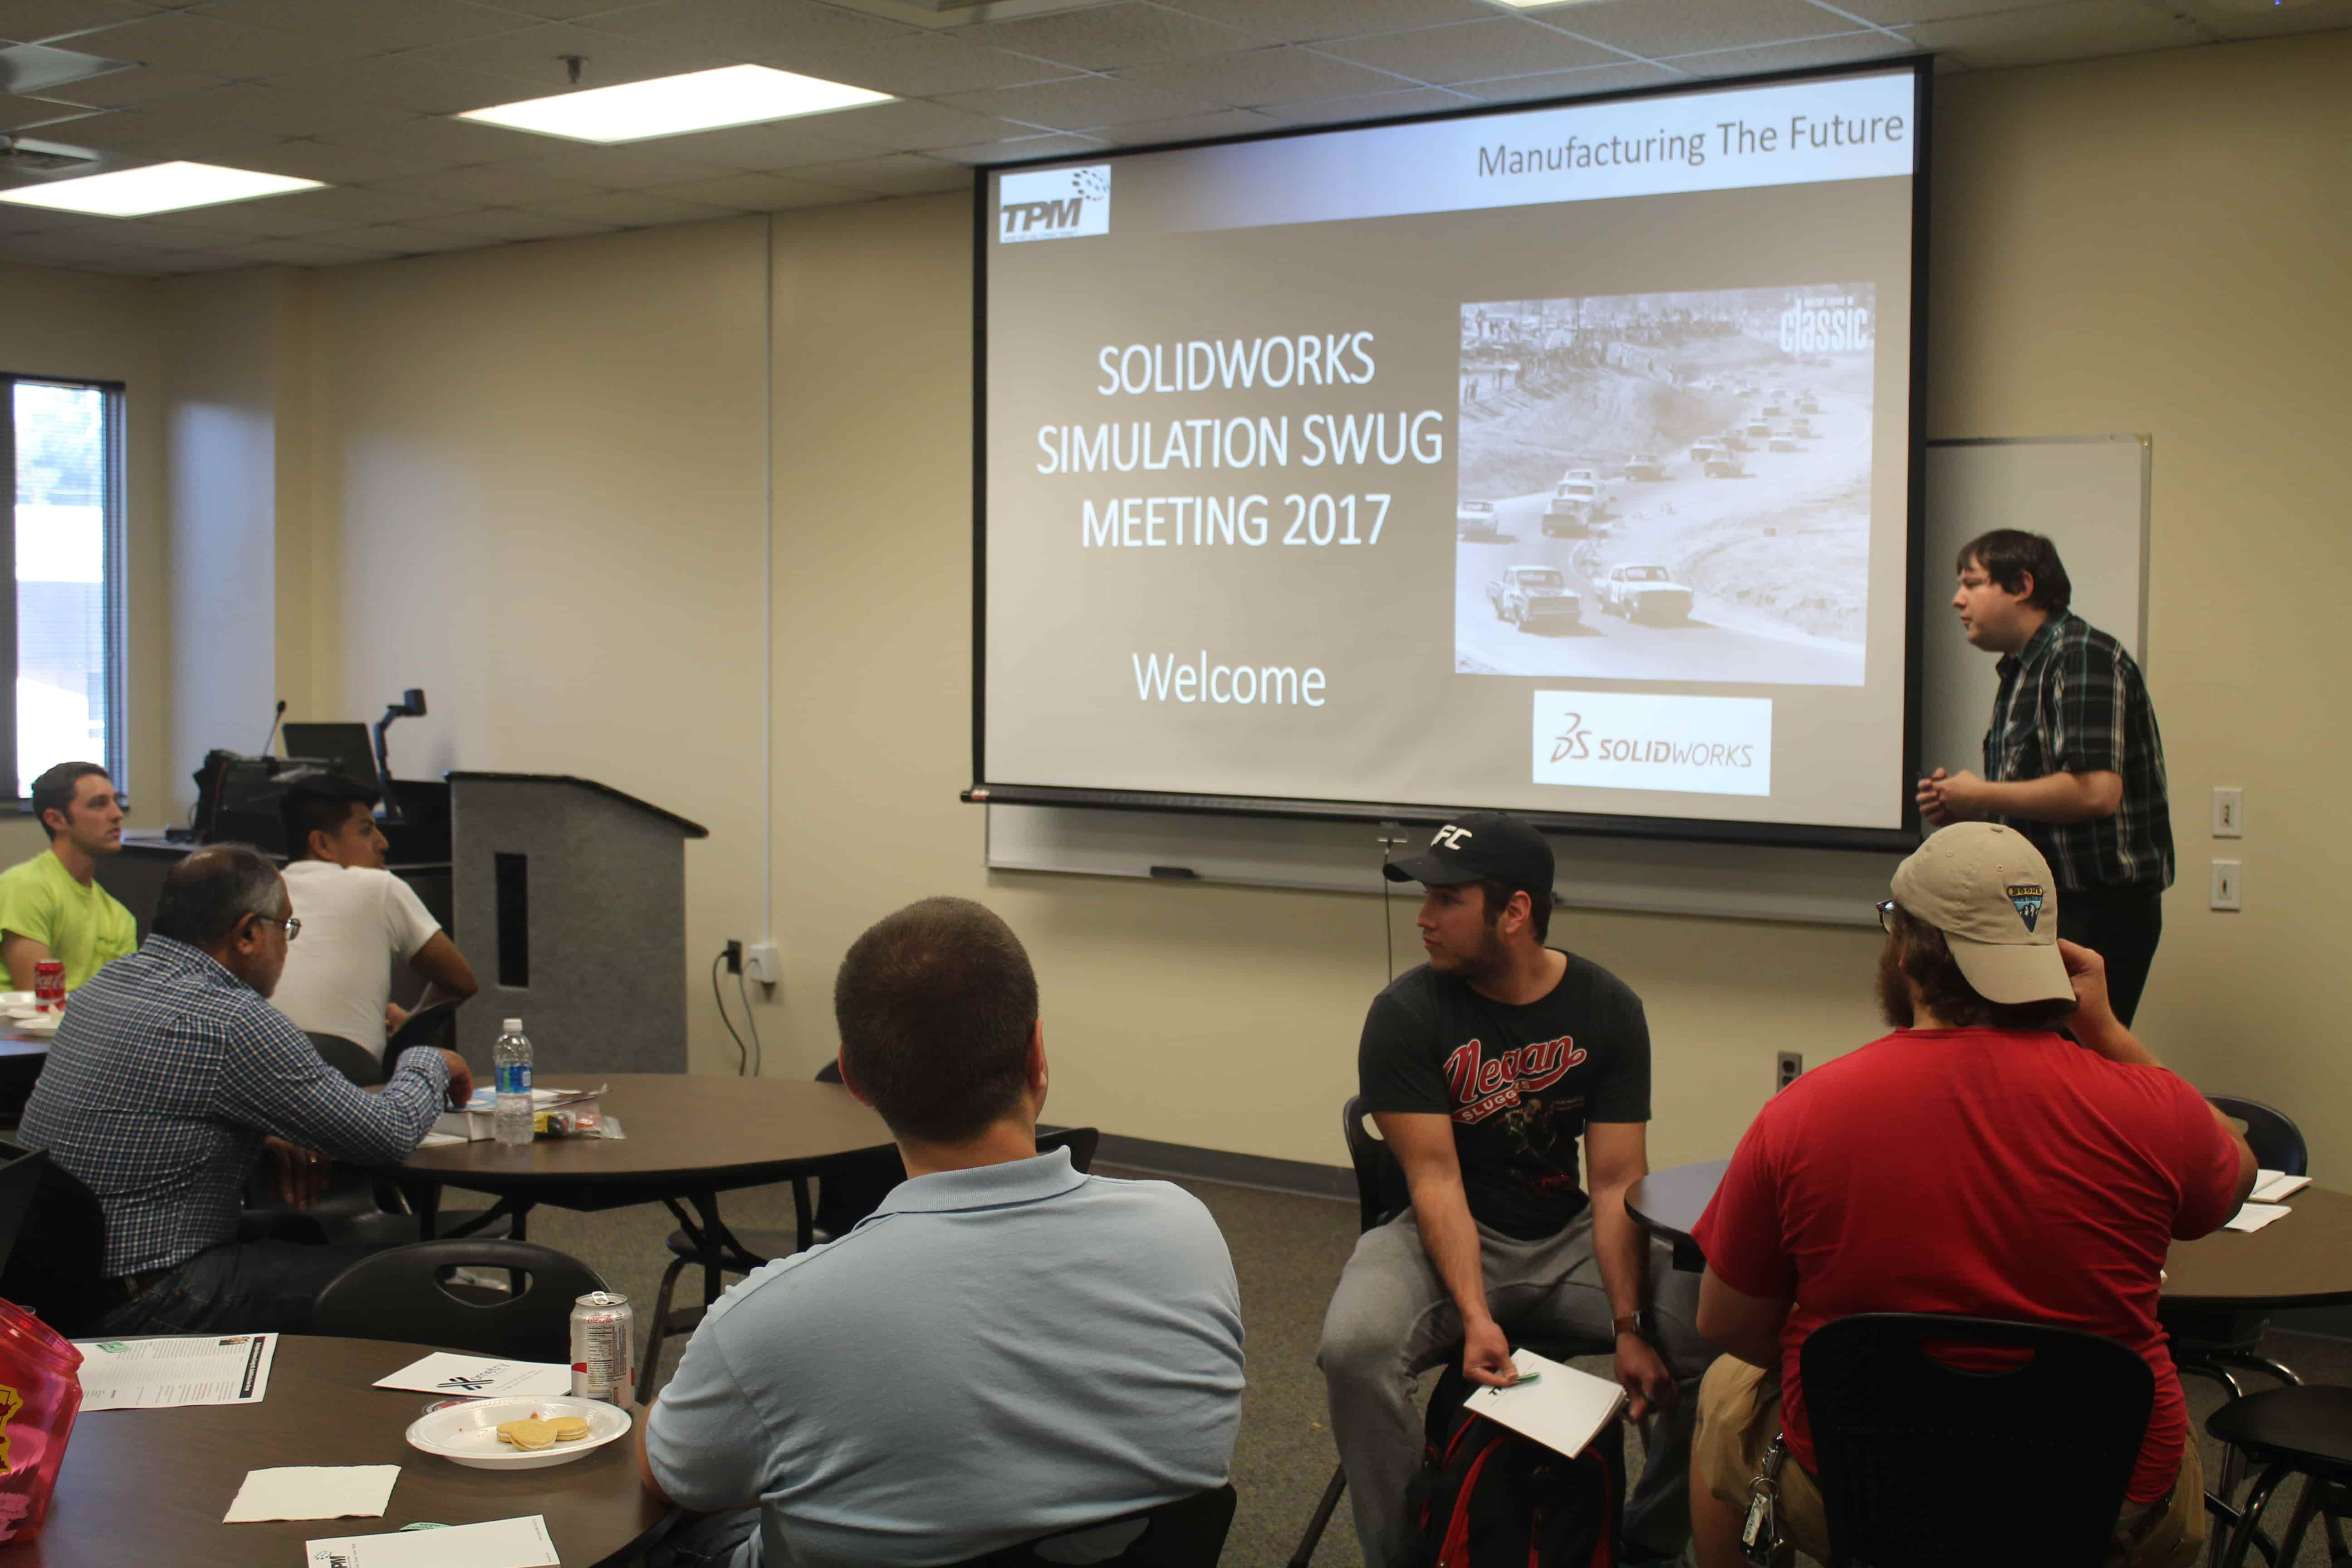 September 7th, 2017 meeting